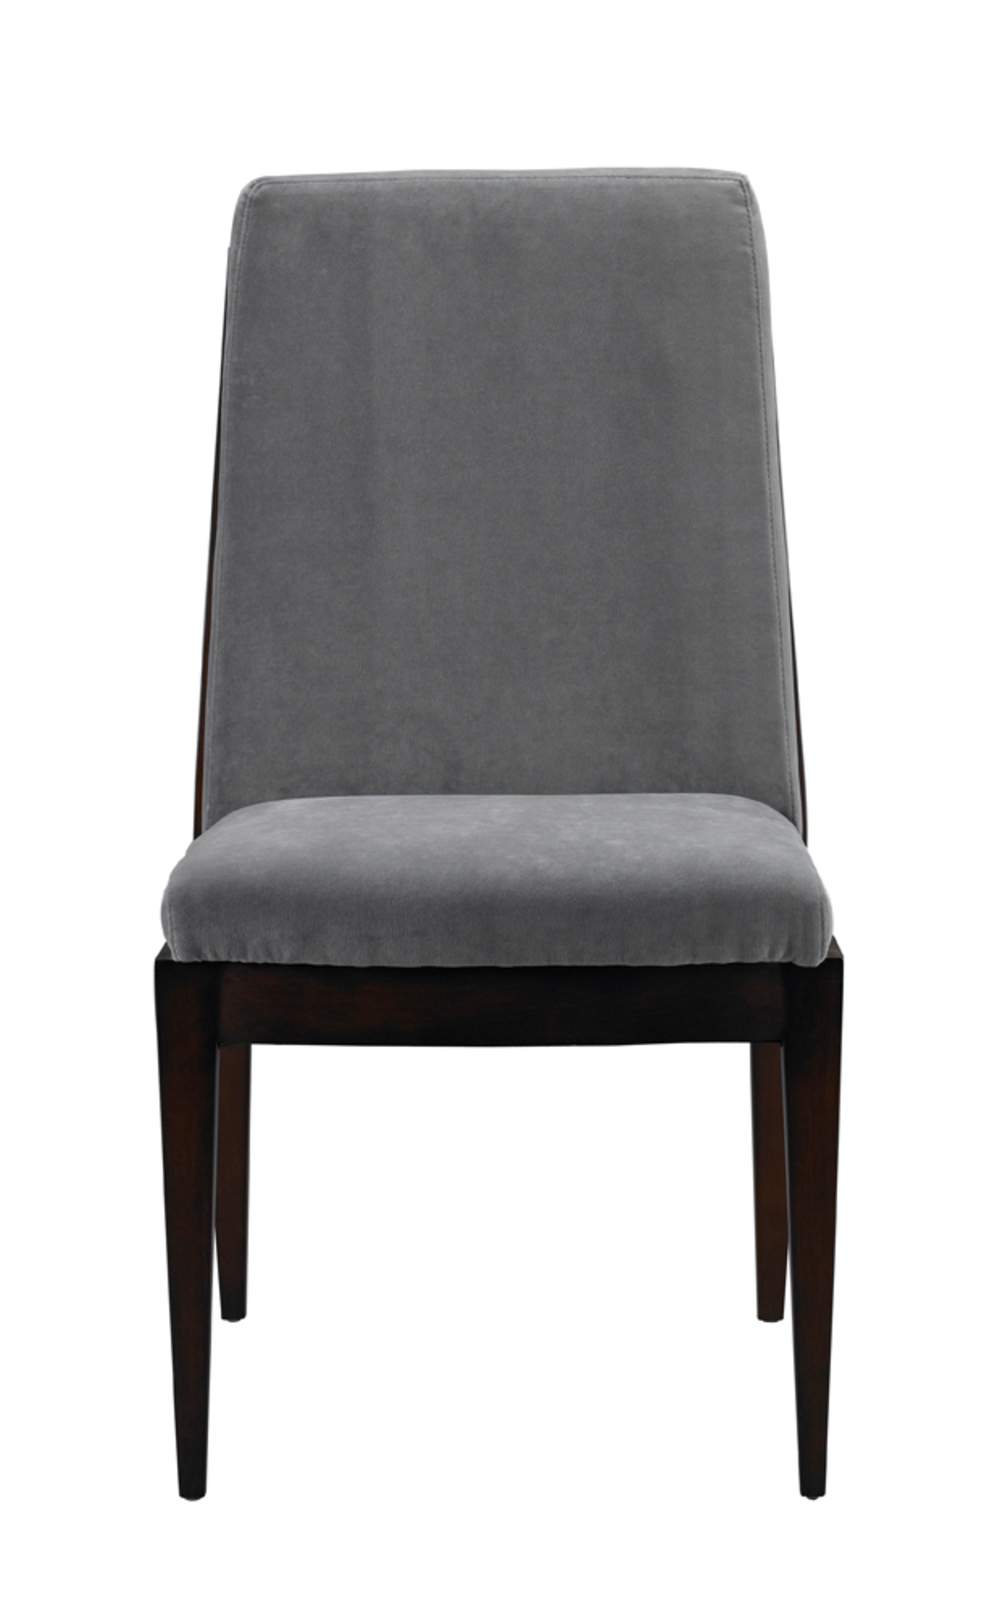 Mr. and Mrs. Howard by Sherrill Furniture - Livingston Armless Chair